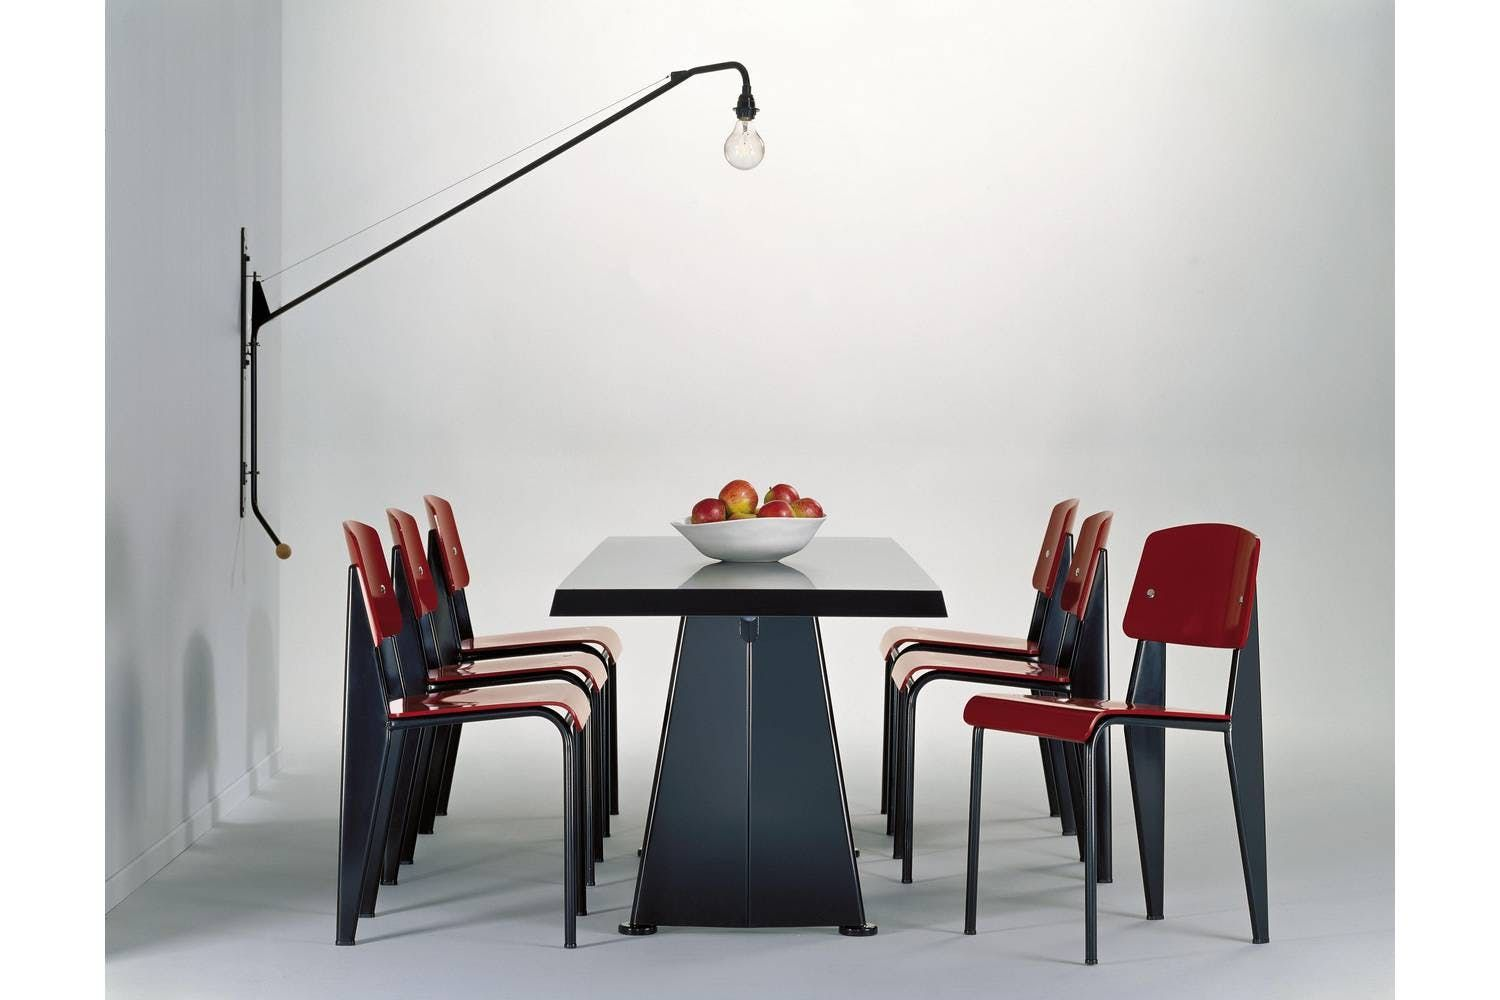 Potence With Images Wall Lamp Office Furniture Solutions Furniture